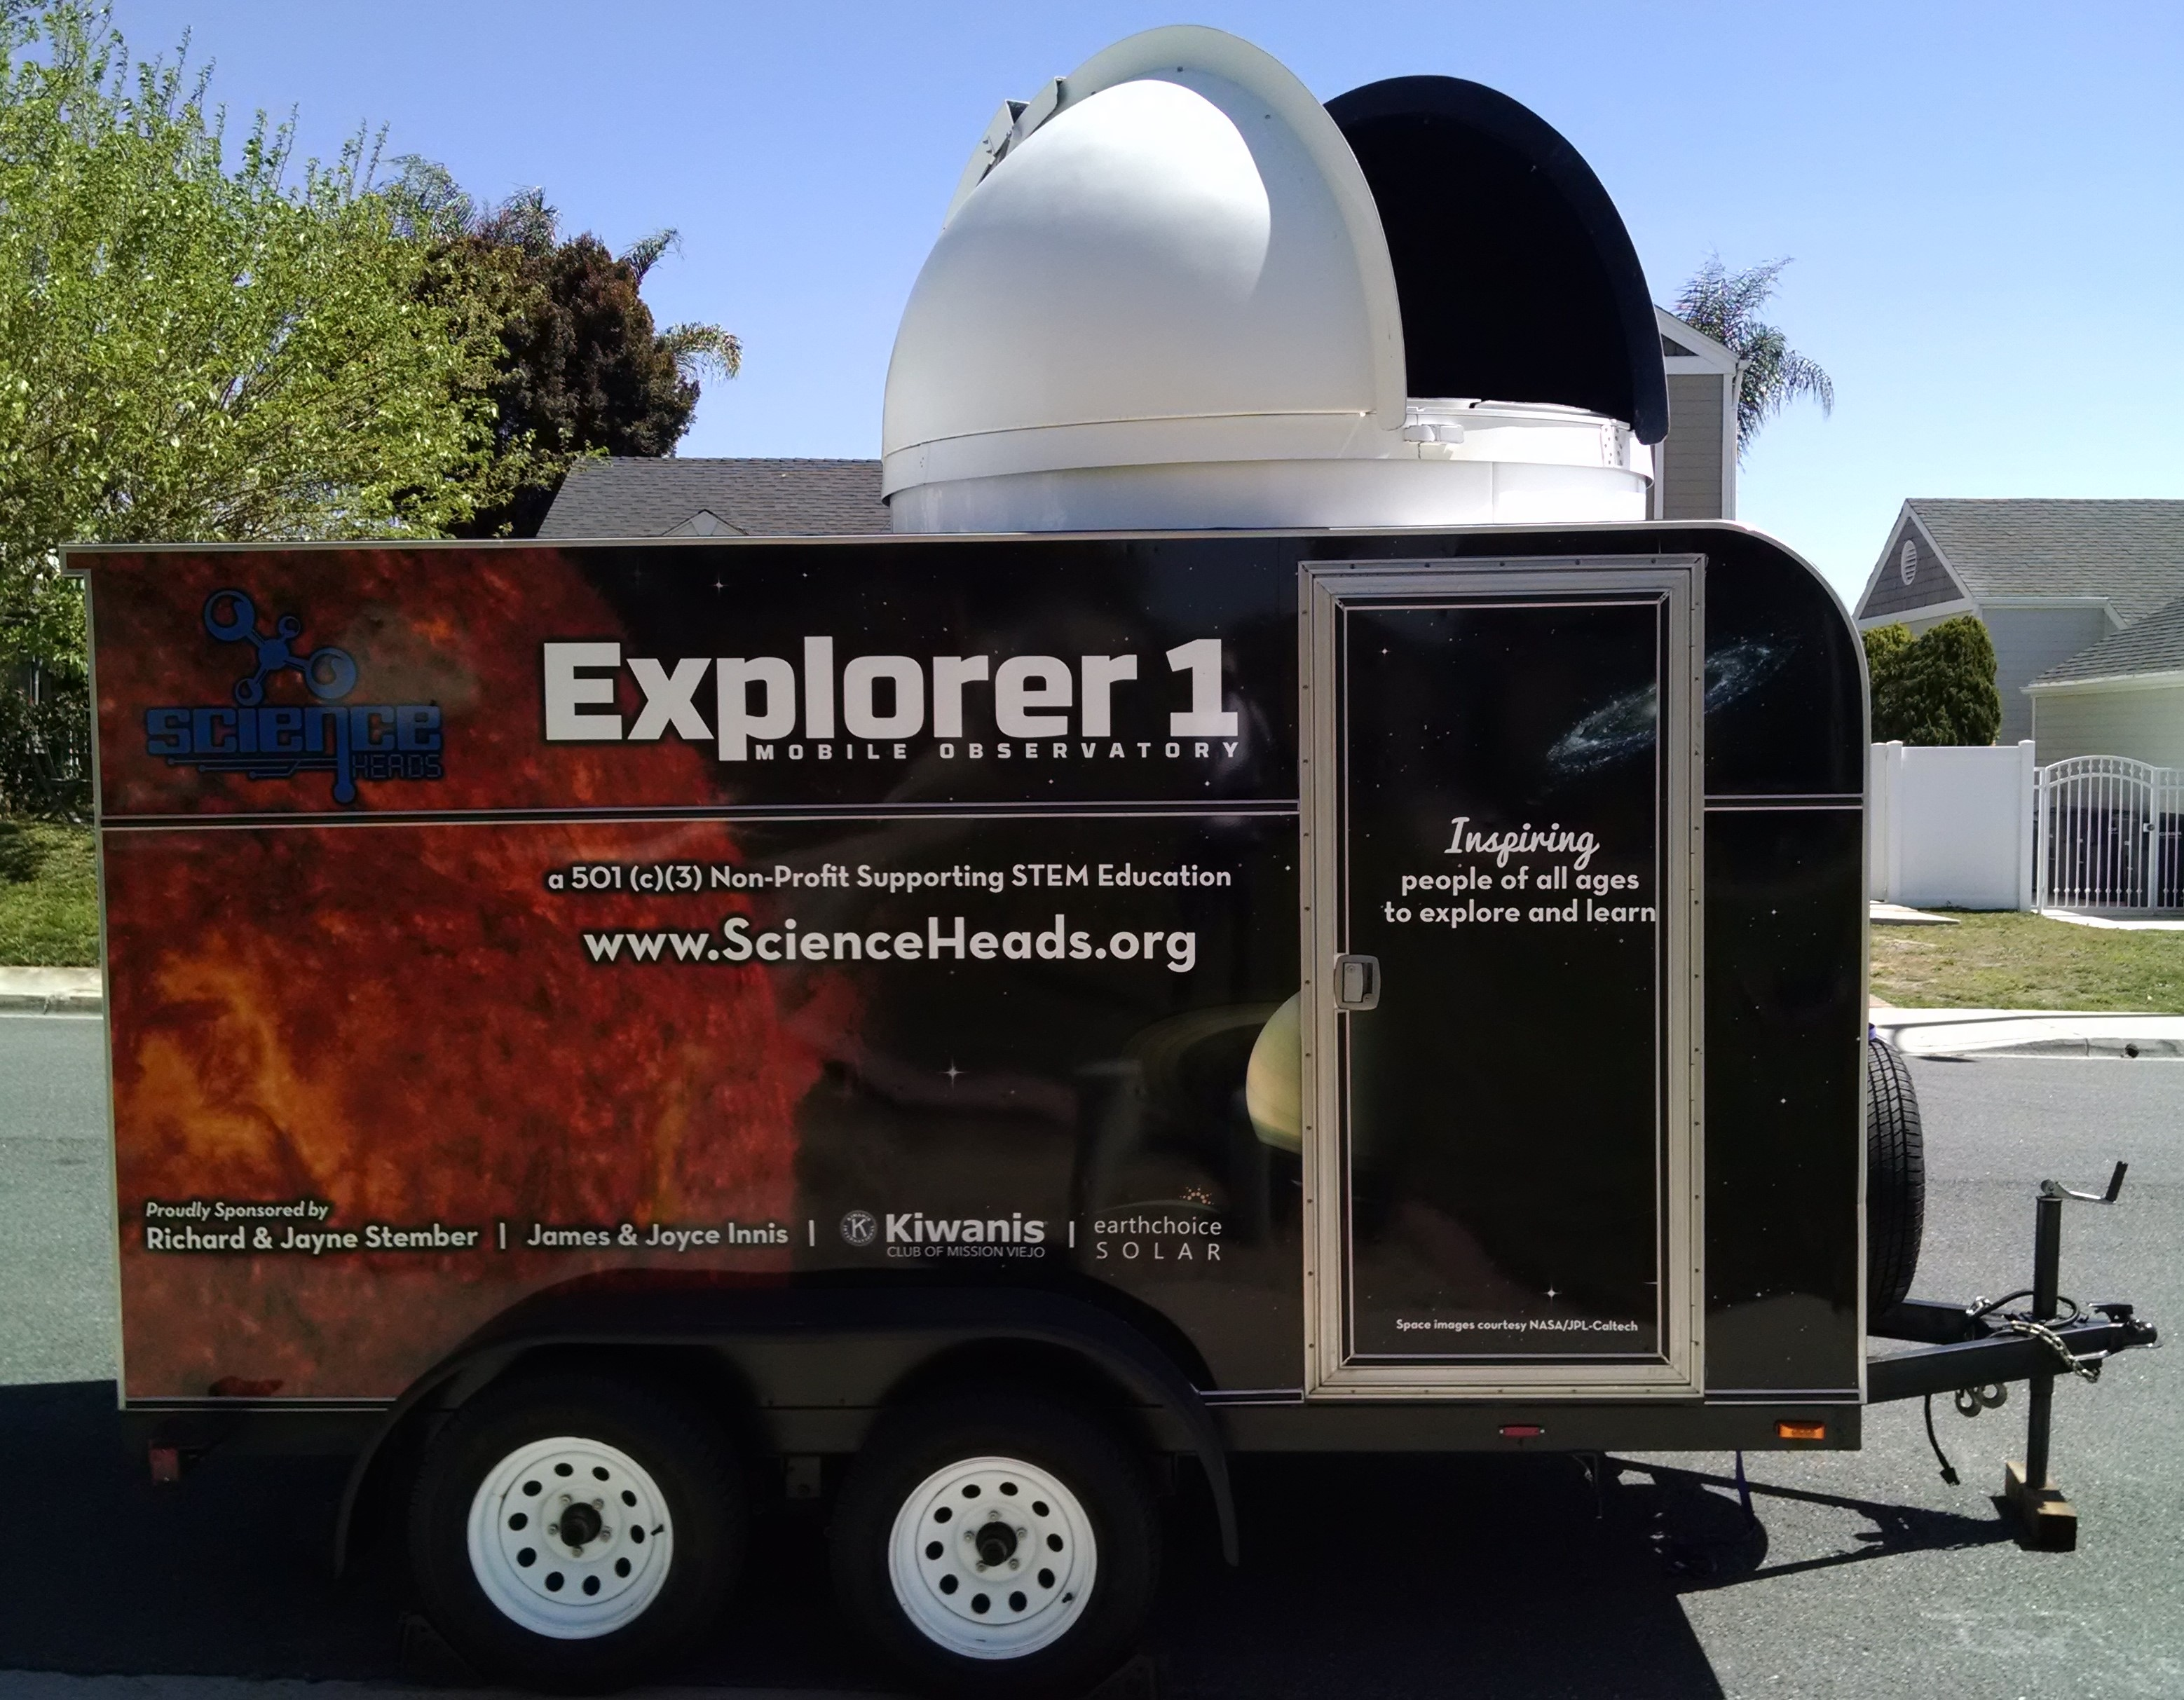 On-Line Star Parties